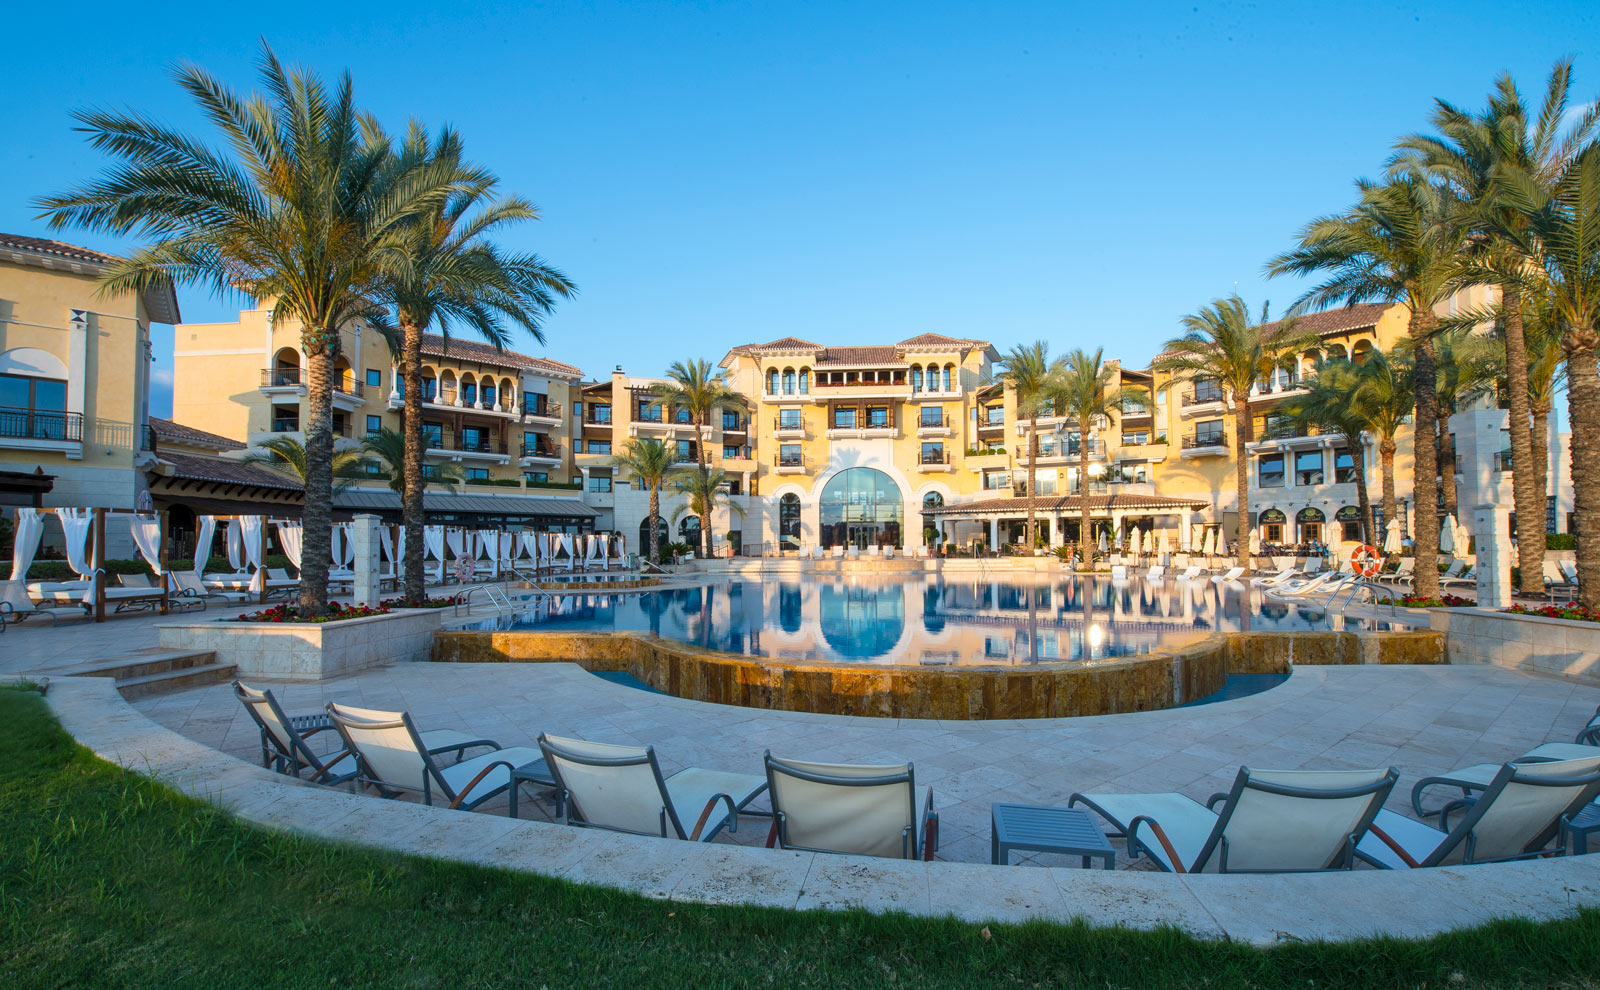 Mar Menor golf resort